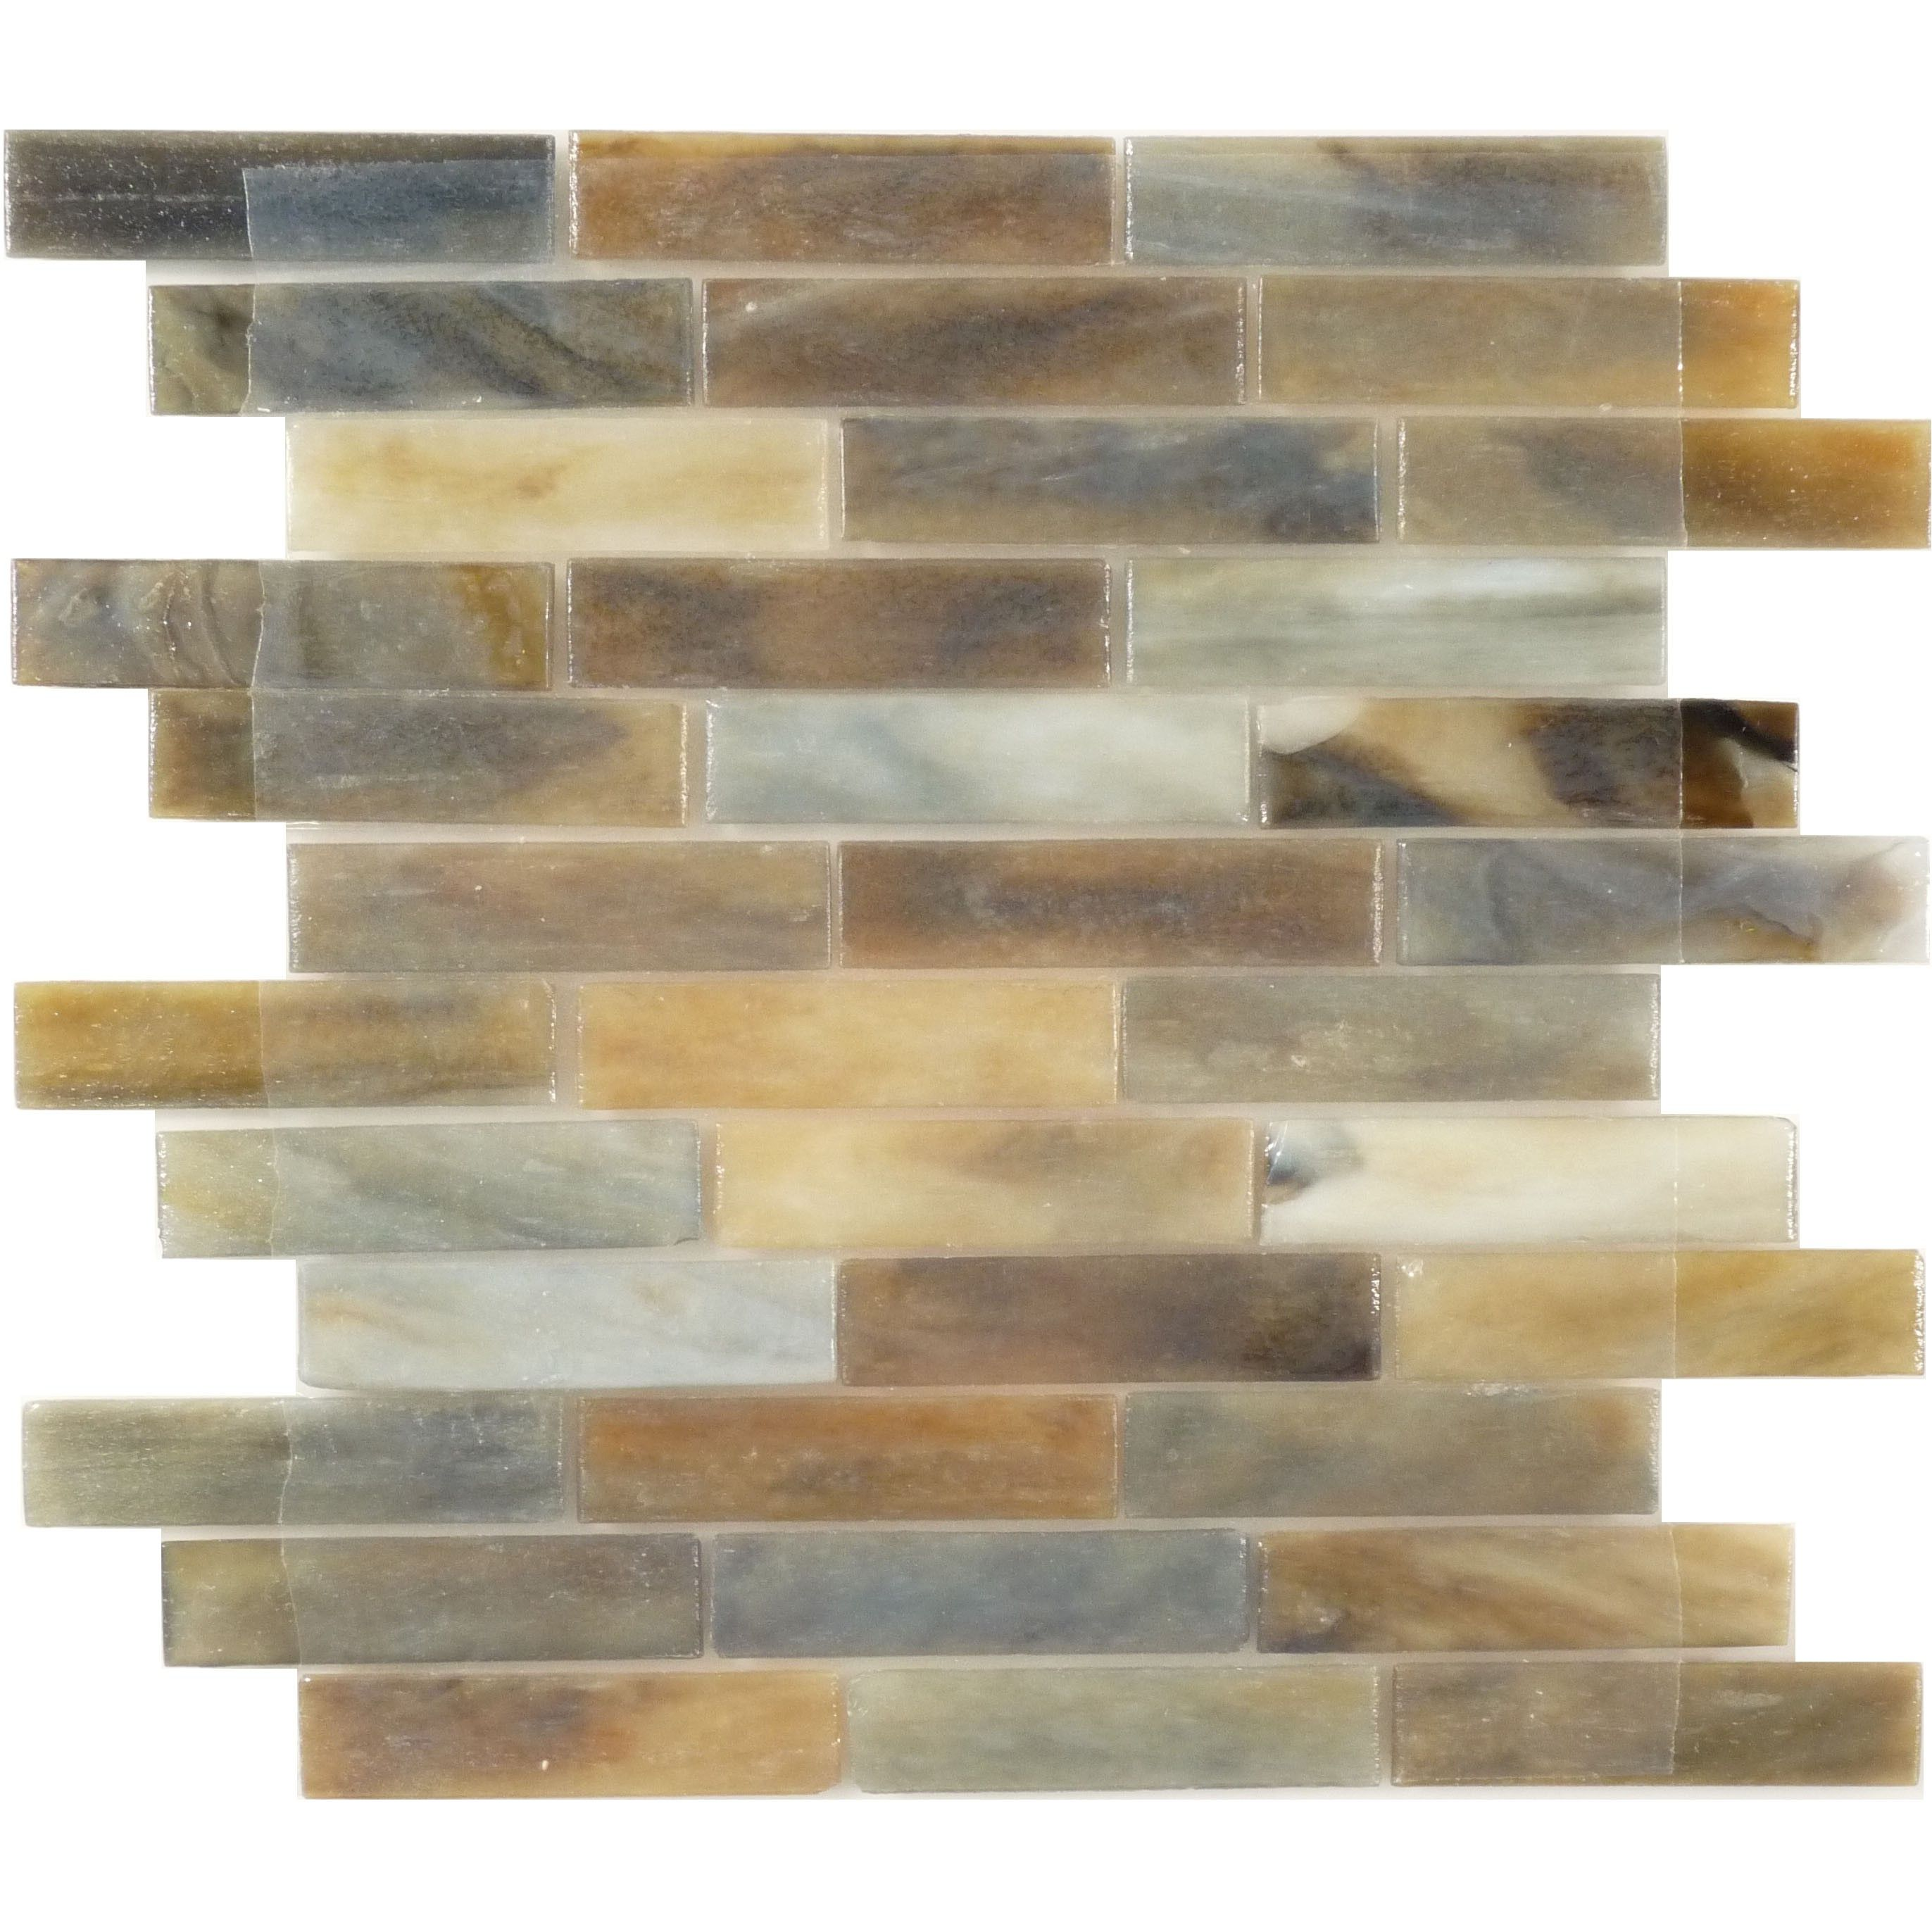 Sheet Size 12 X 1380 Tile Size 1 X 4 Tile Thickness 14